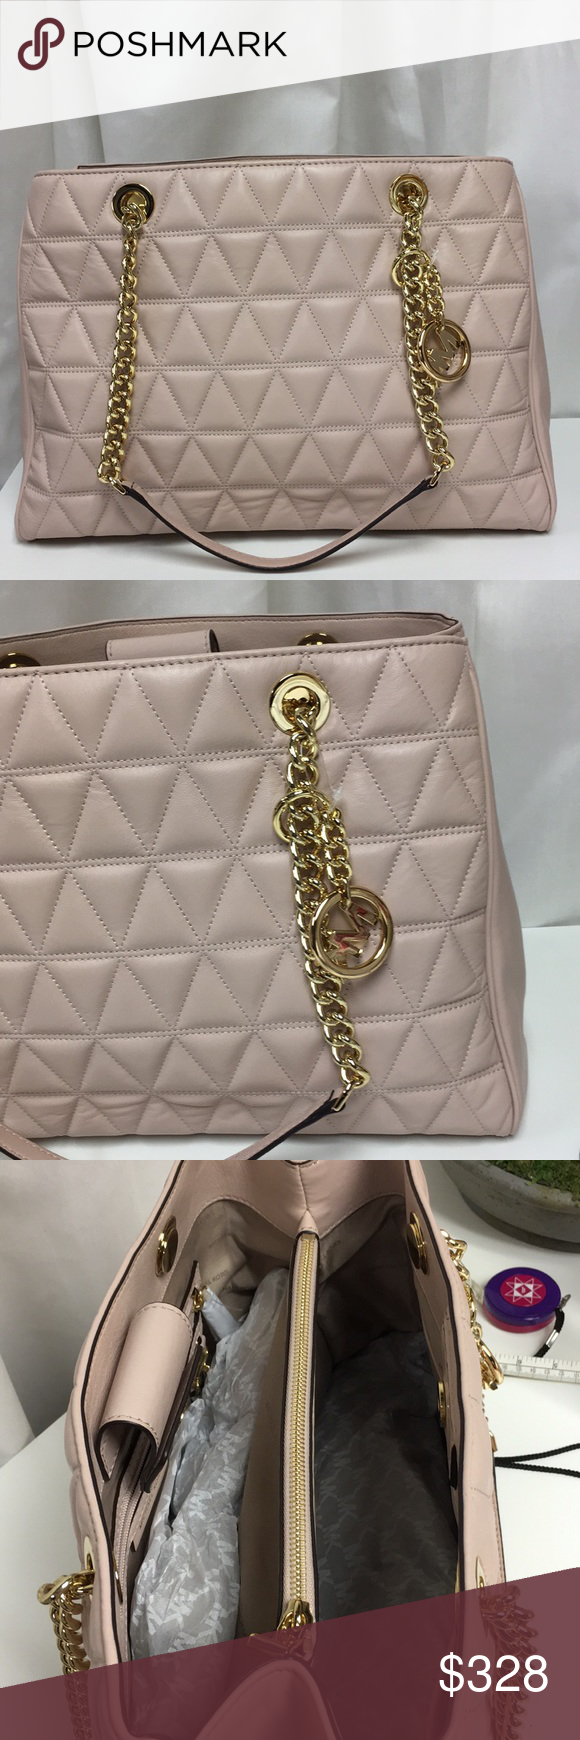 3a2f47d27bc3 Michael Kors Scarlett Large Soft Pink Quilted Bag Michael Kors Scarlett  Large Soft Pink Quilted Leather